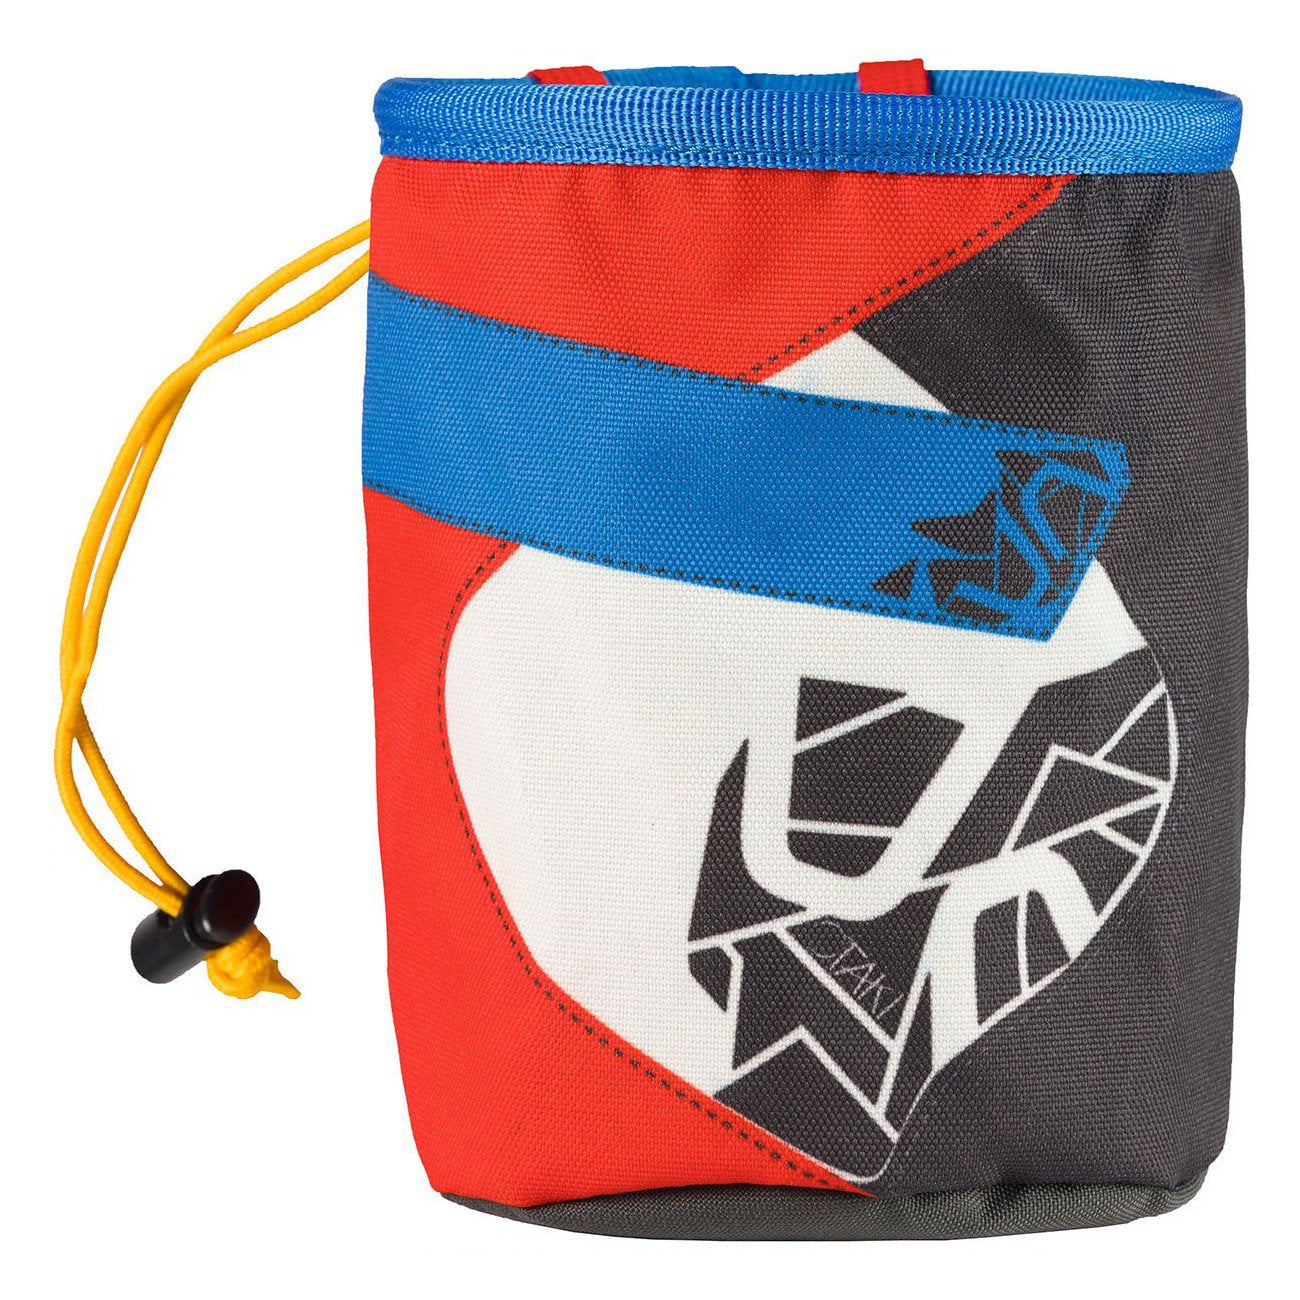 La Sportiva Otaki Chalk Bag, front view in black, white, red and blue colours